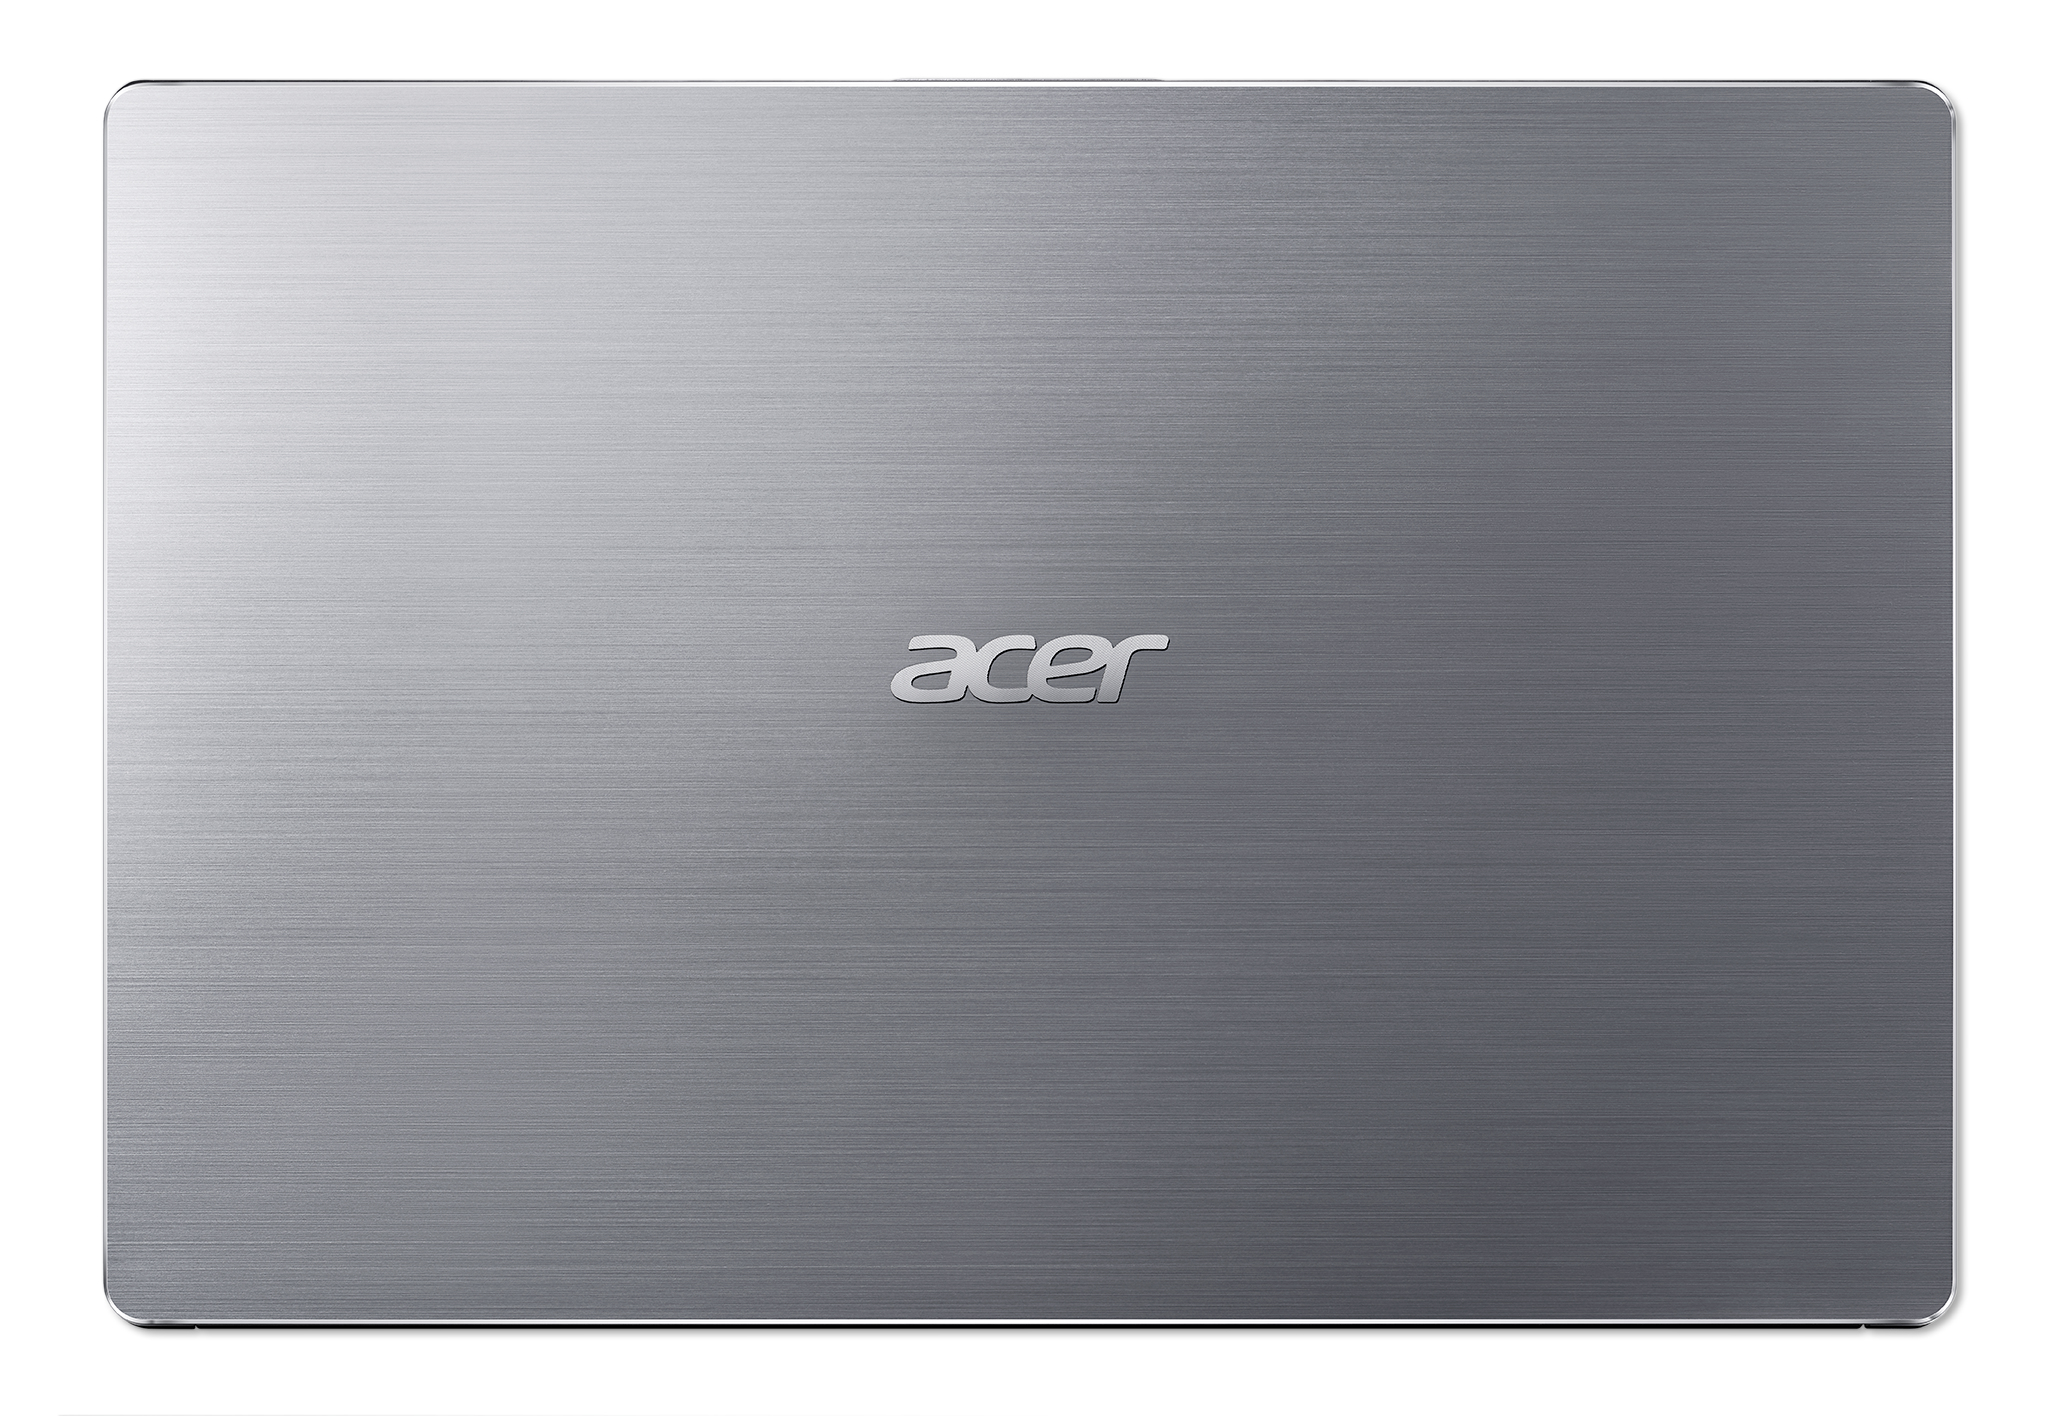 Acer Swift 3 SF315-52-52MC, Silver, 15,6 inch FHD IPS, i5-8250U, 4GB DDR4, 512GB PCIe NVMe SSD, UHD Graphics 620, no ODD< WIn 10 Home***